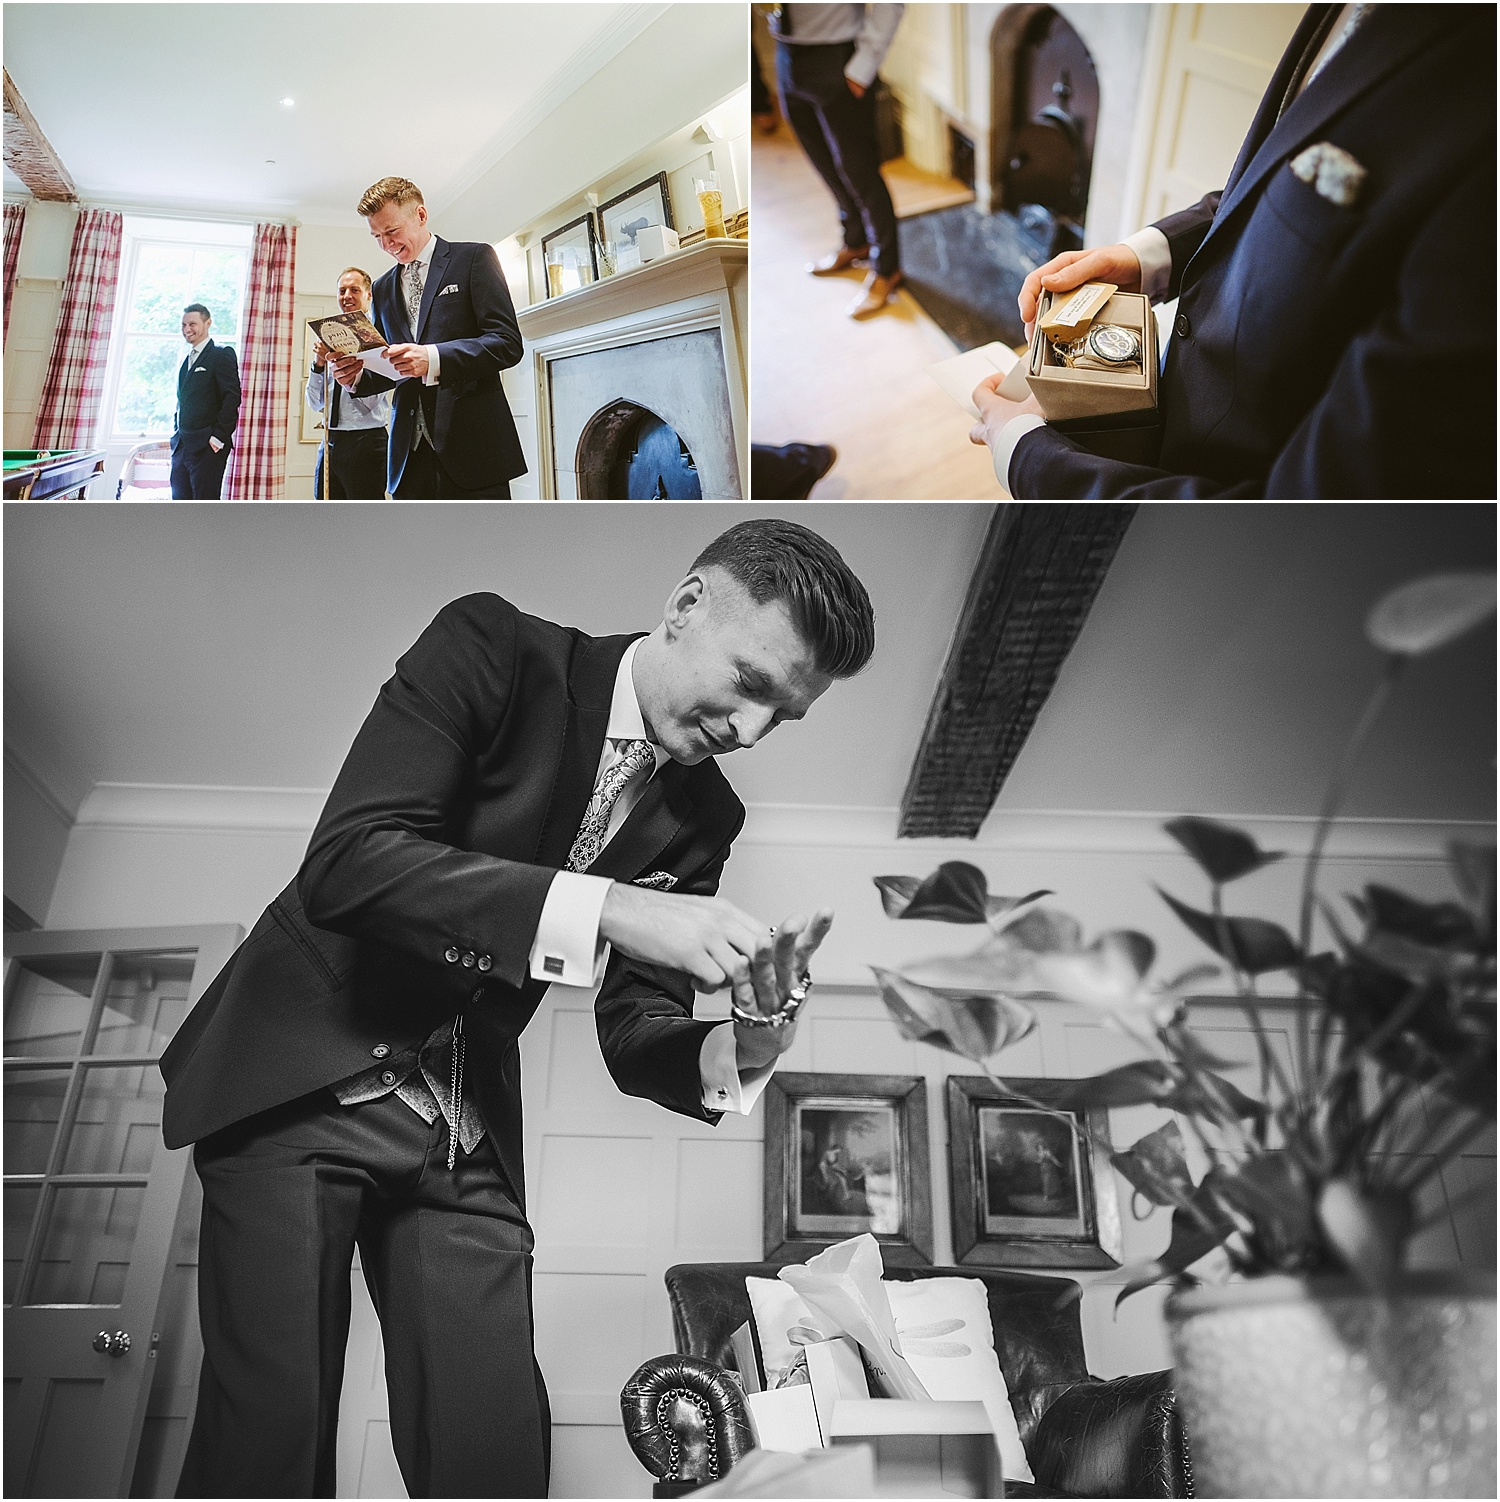 Lartington Hall weddings by www.2tonephotography.co.uk 023.jpg